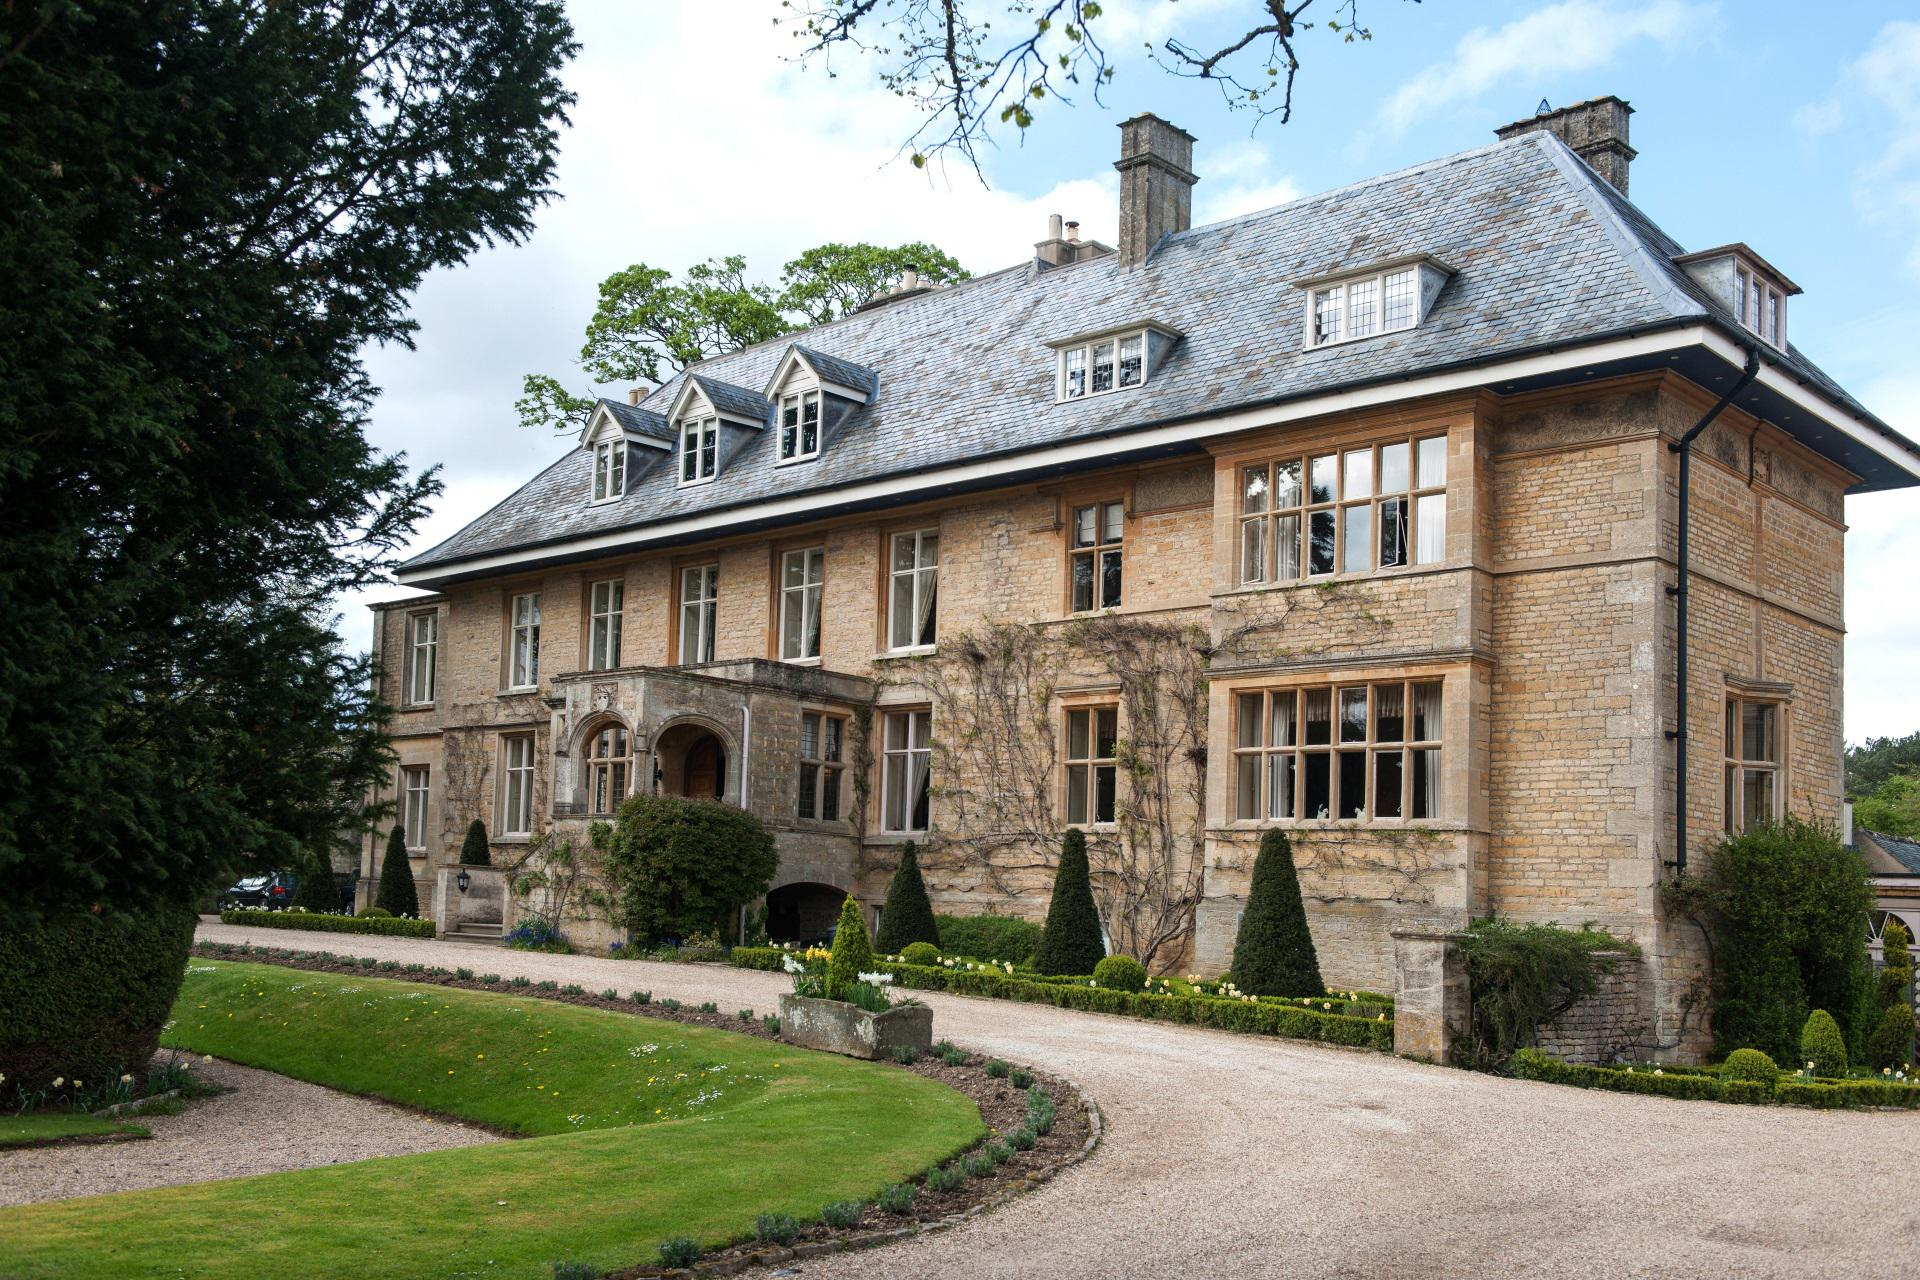 The Slaughters Manor House Exterior View